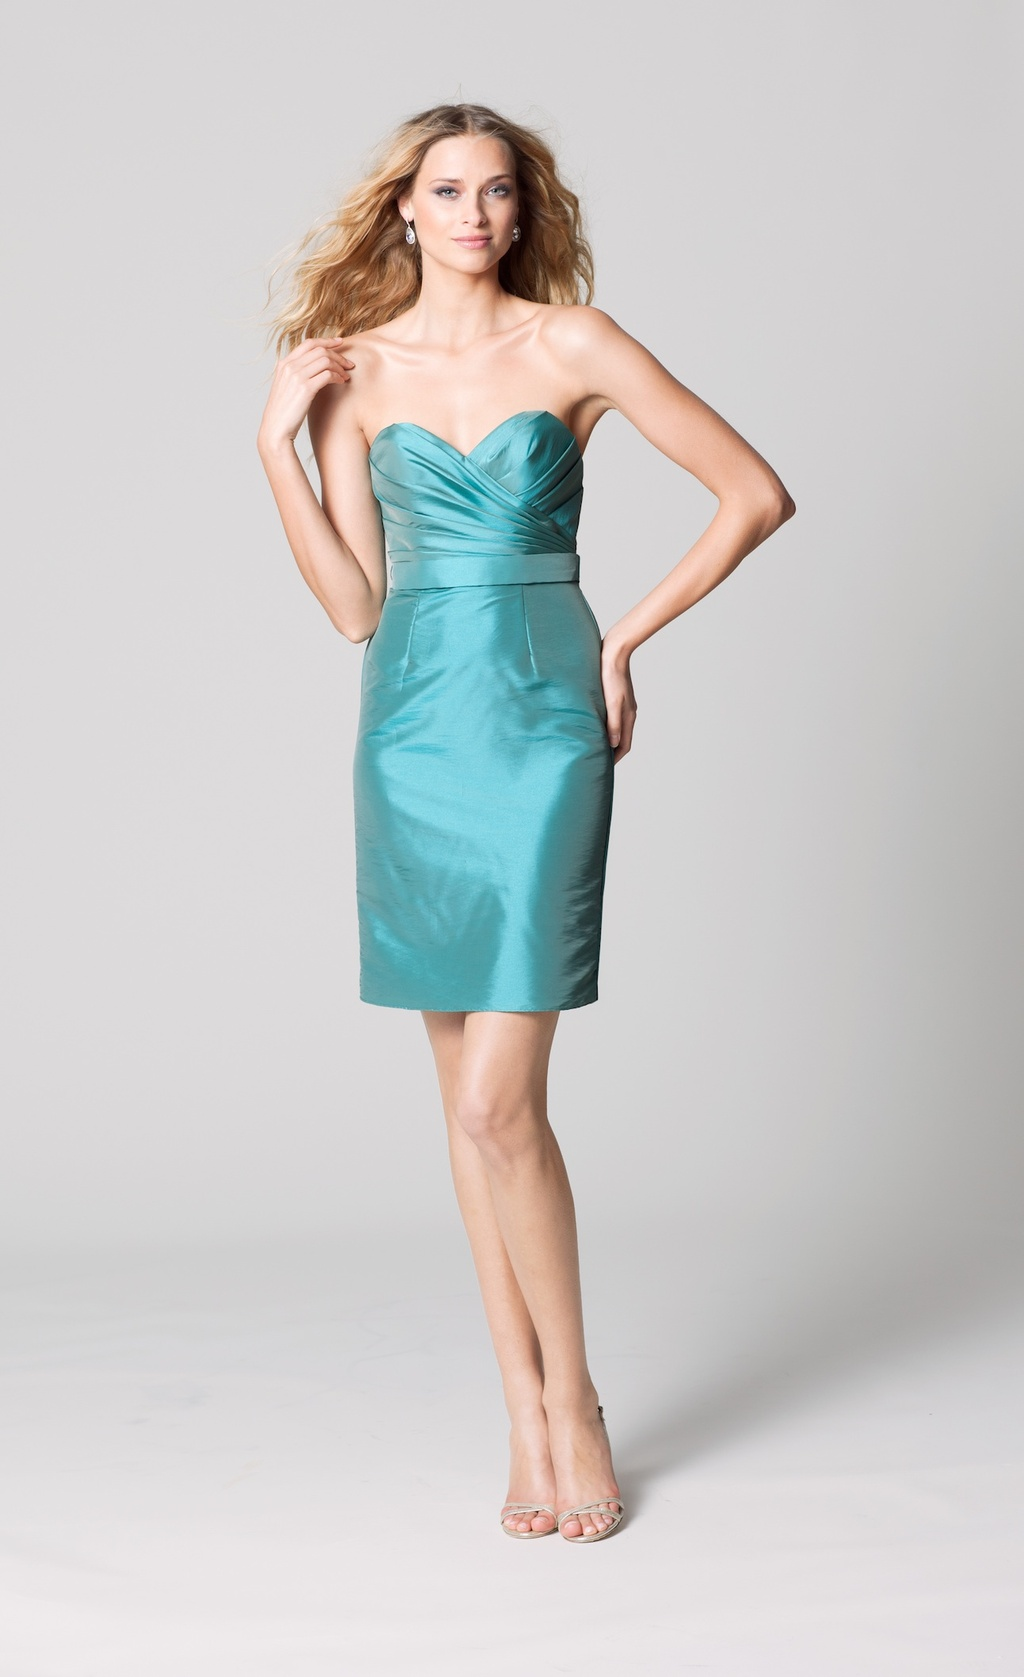 Affordable-bridesmaids-dresses-fall-2012-wtoo-by-watters-bridal-party-aqua-taffeta-sweetheart.full